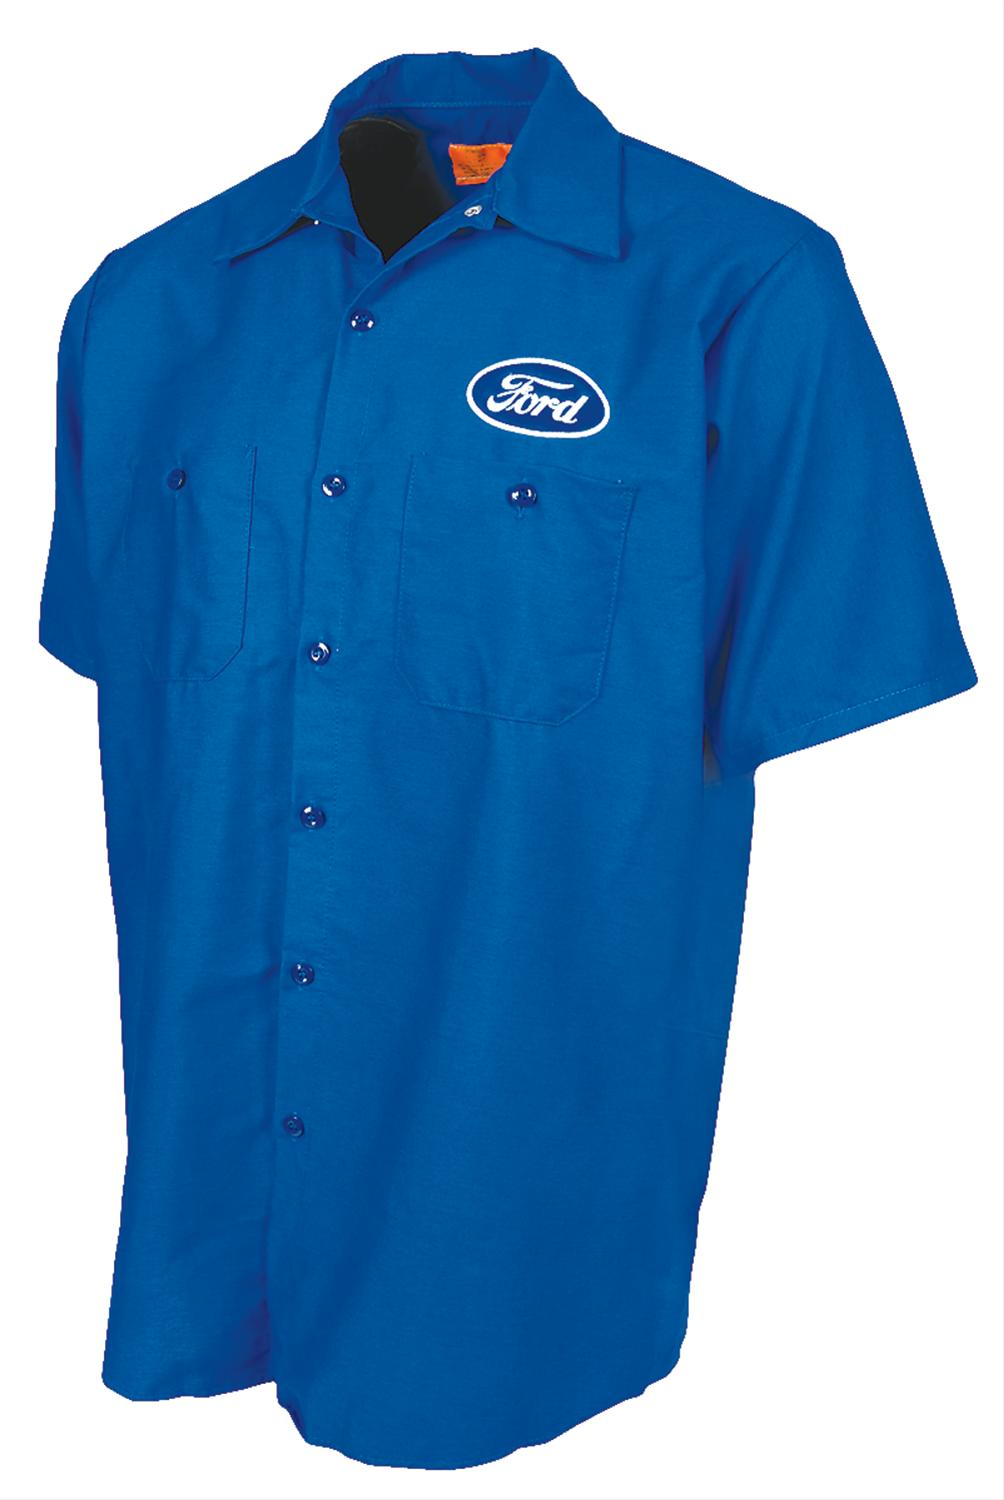 Ford Distressed Mechanics Shirt Free Shipping On Orders Over 99